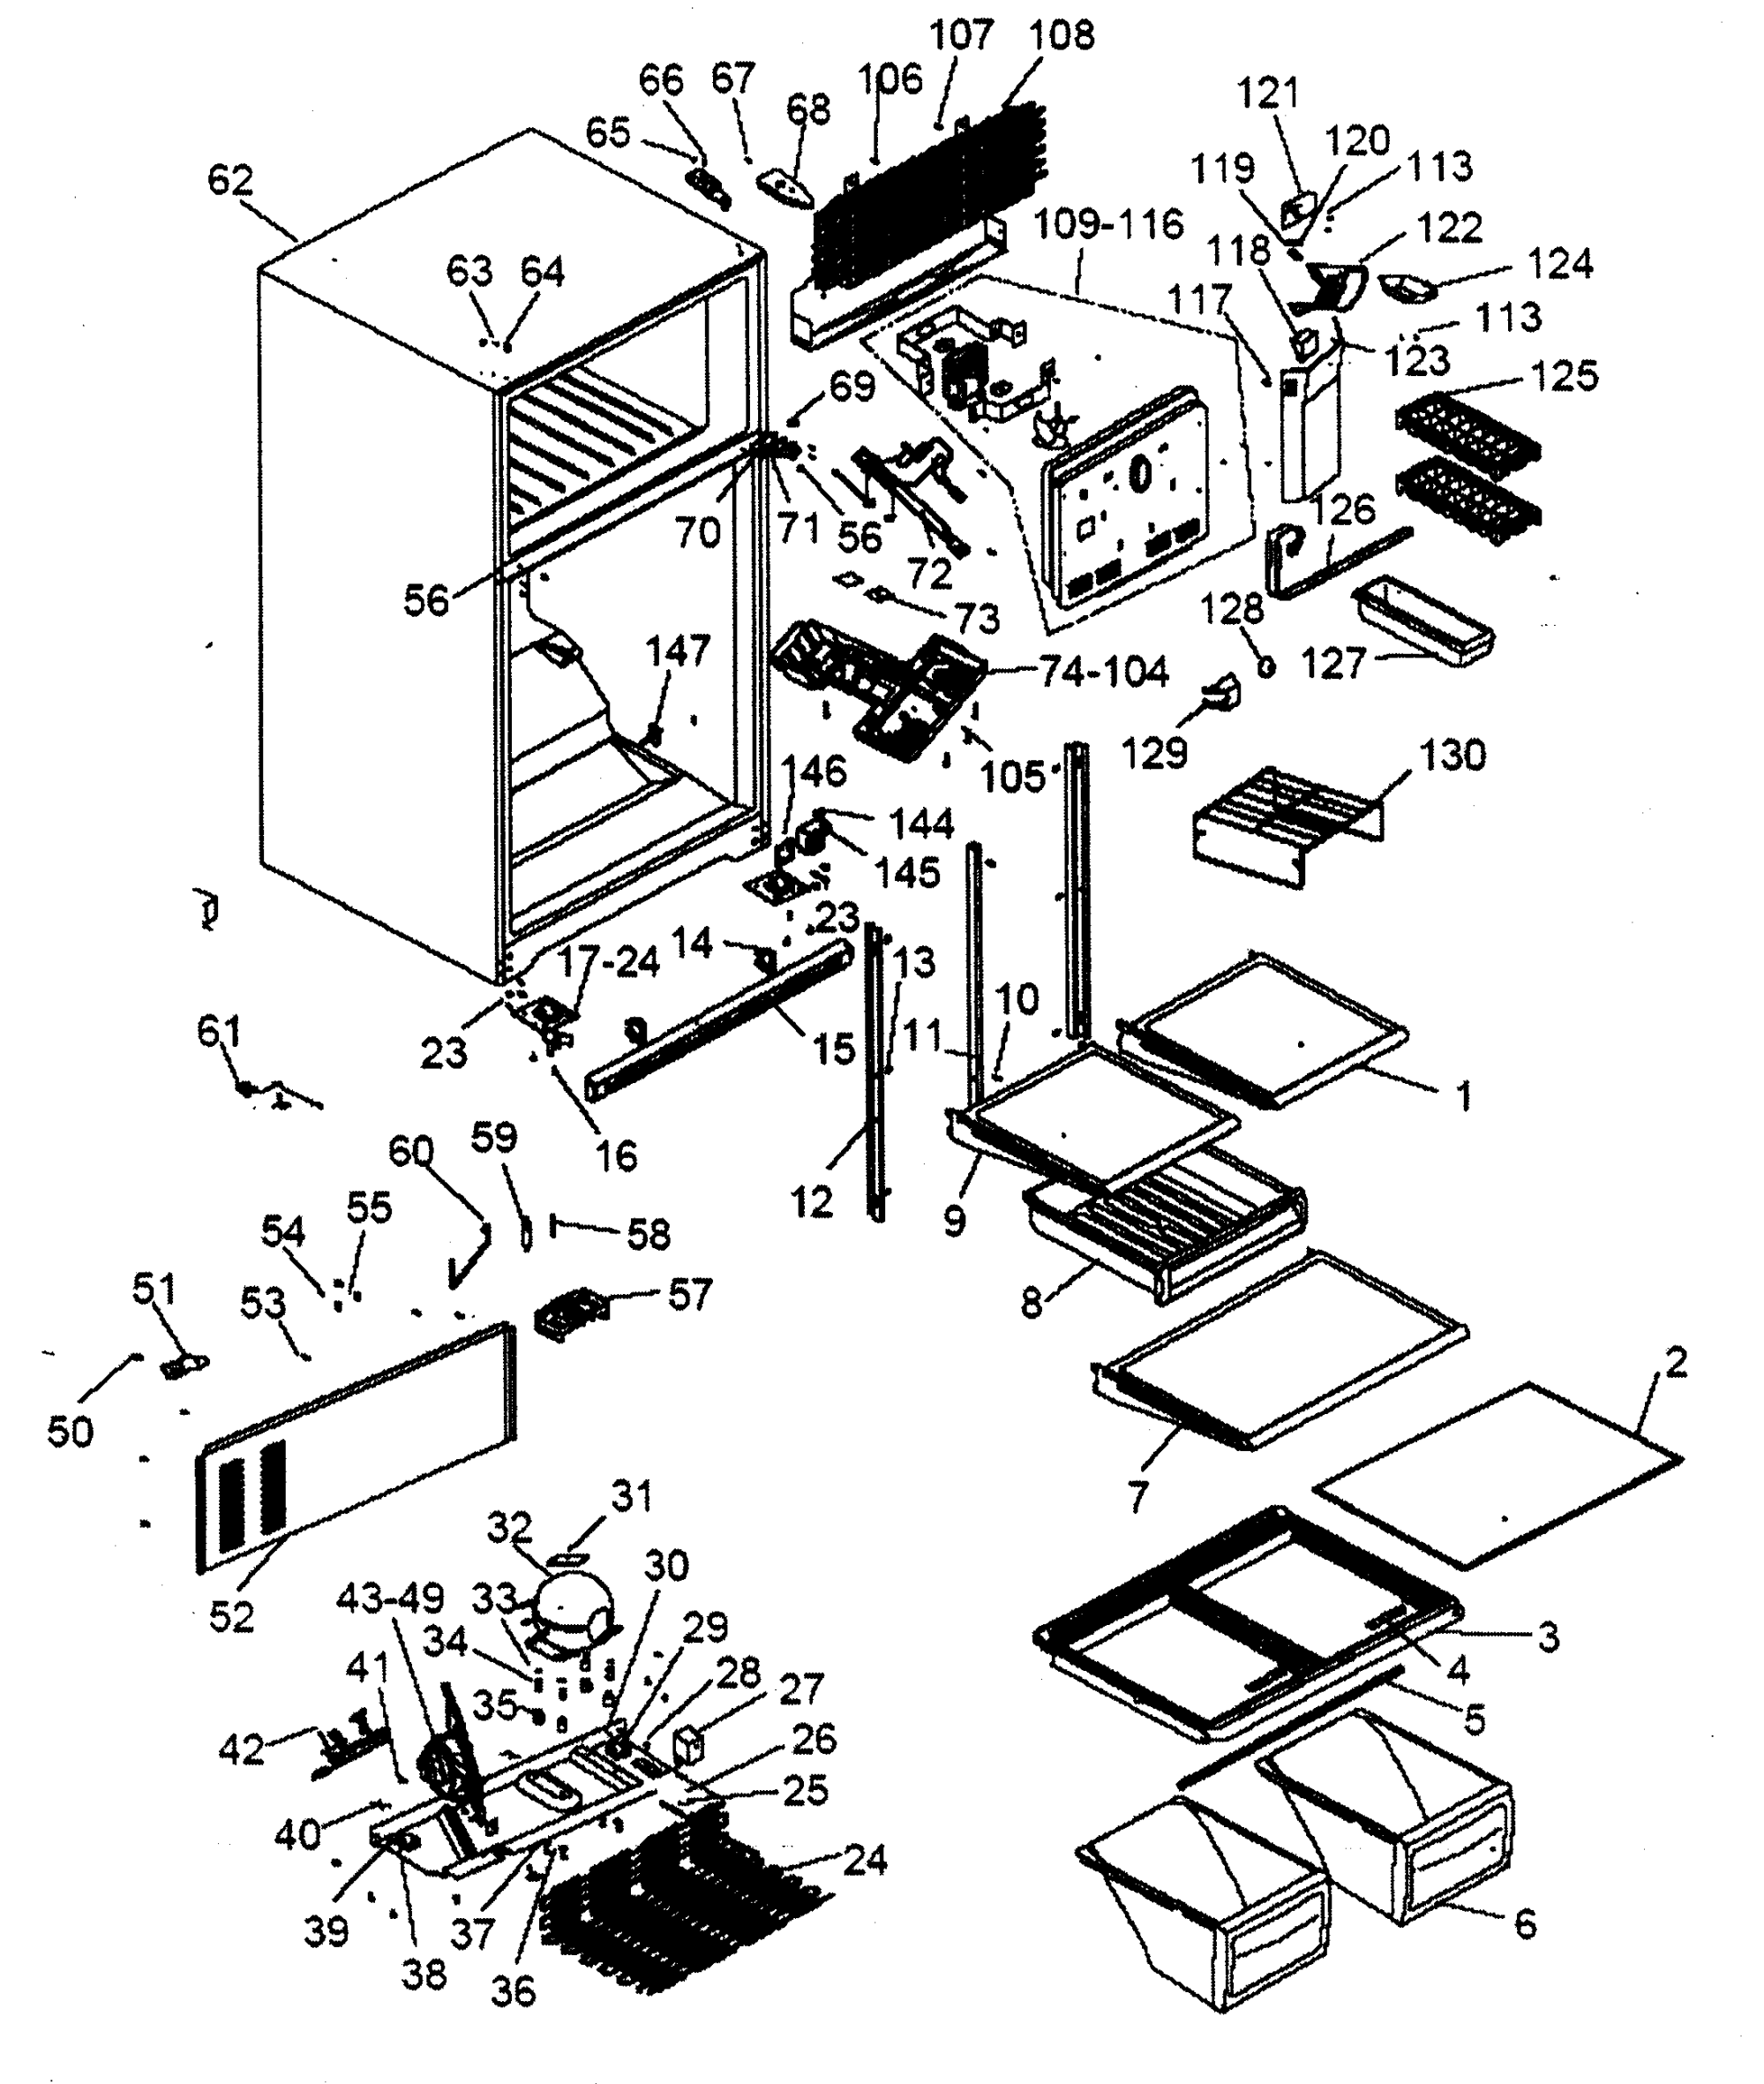 hight resolution of refrigerator parts diagram photos